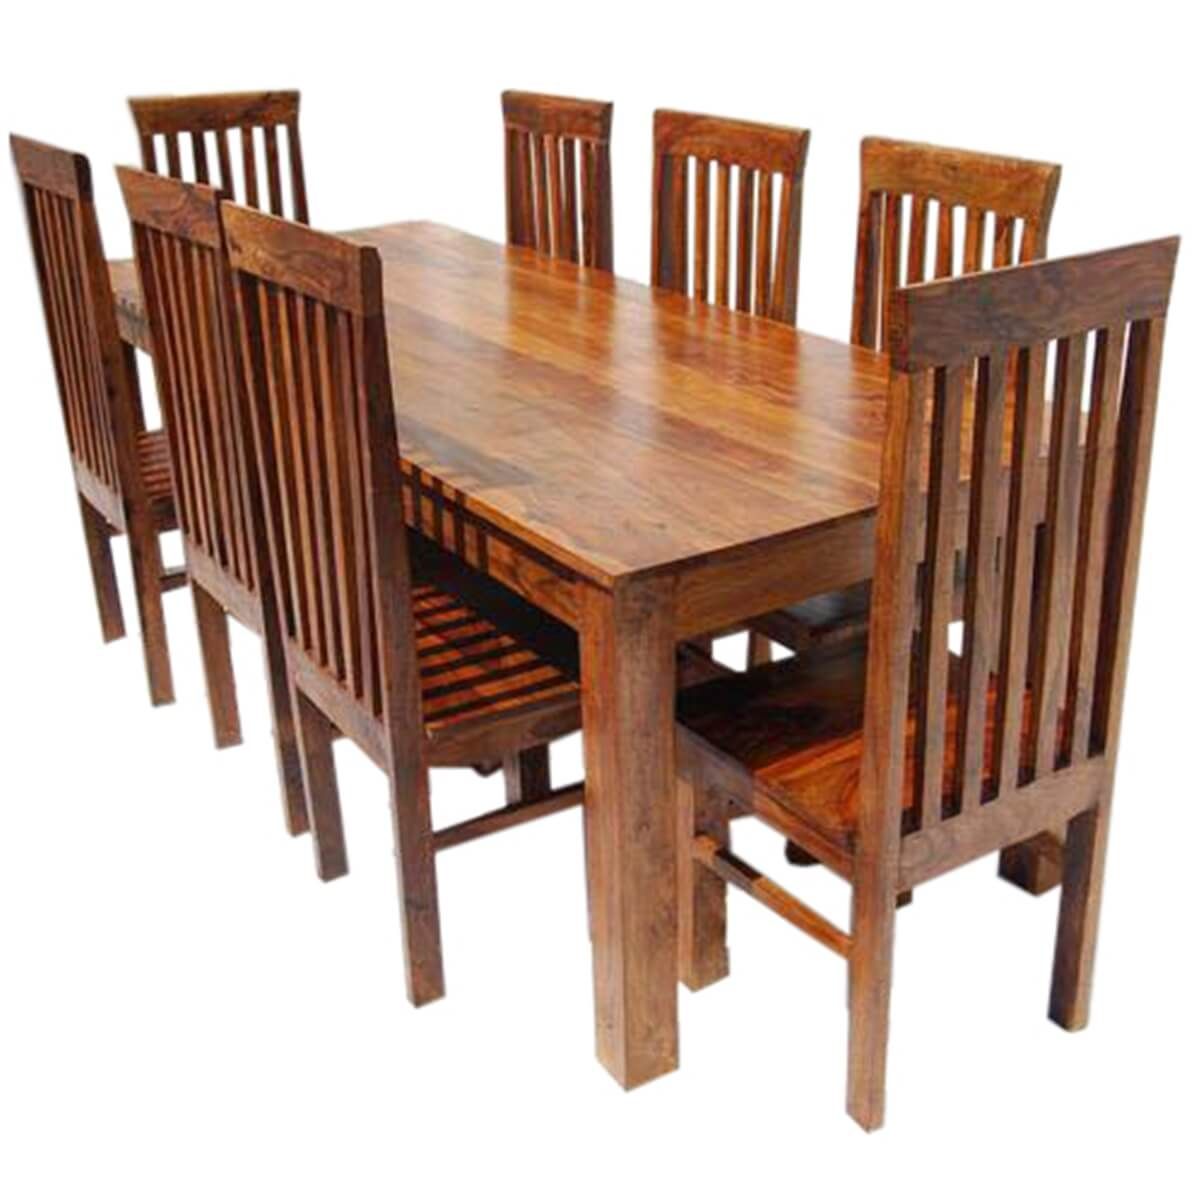 rustic dining table and chairs rope rocking chair classic lincoln study set